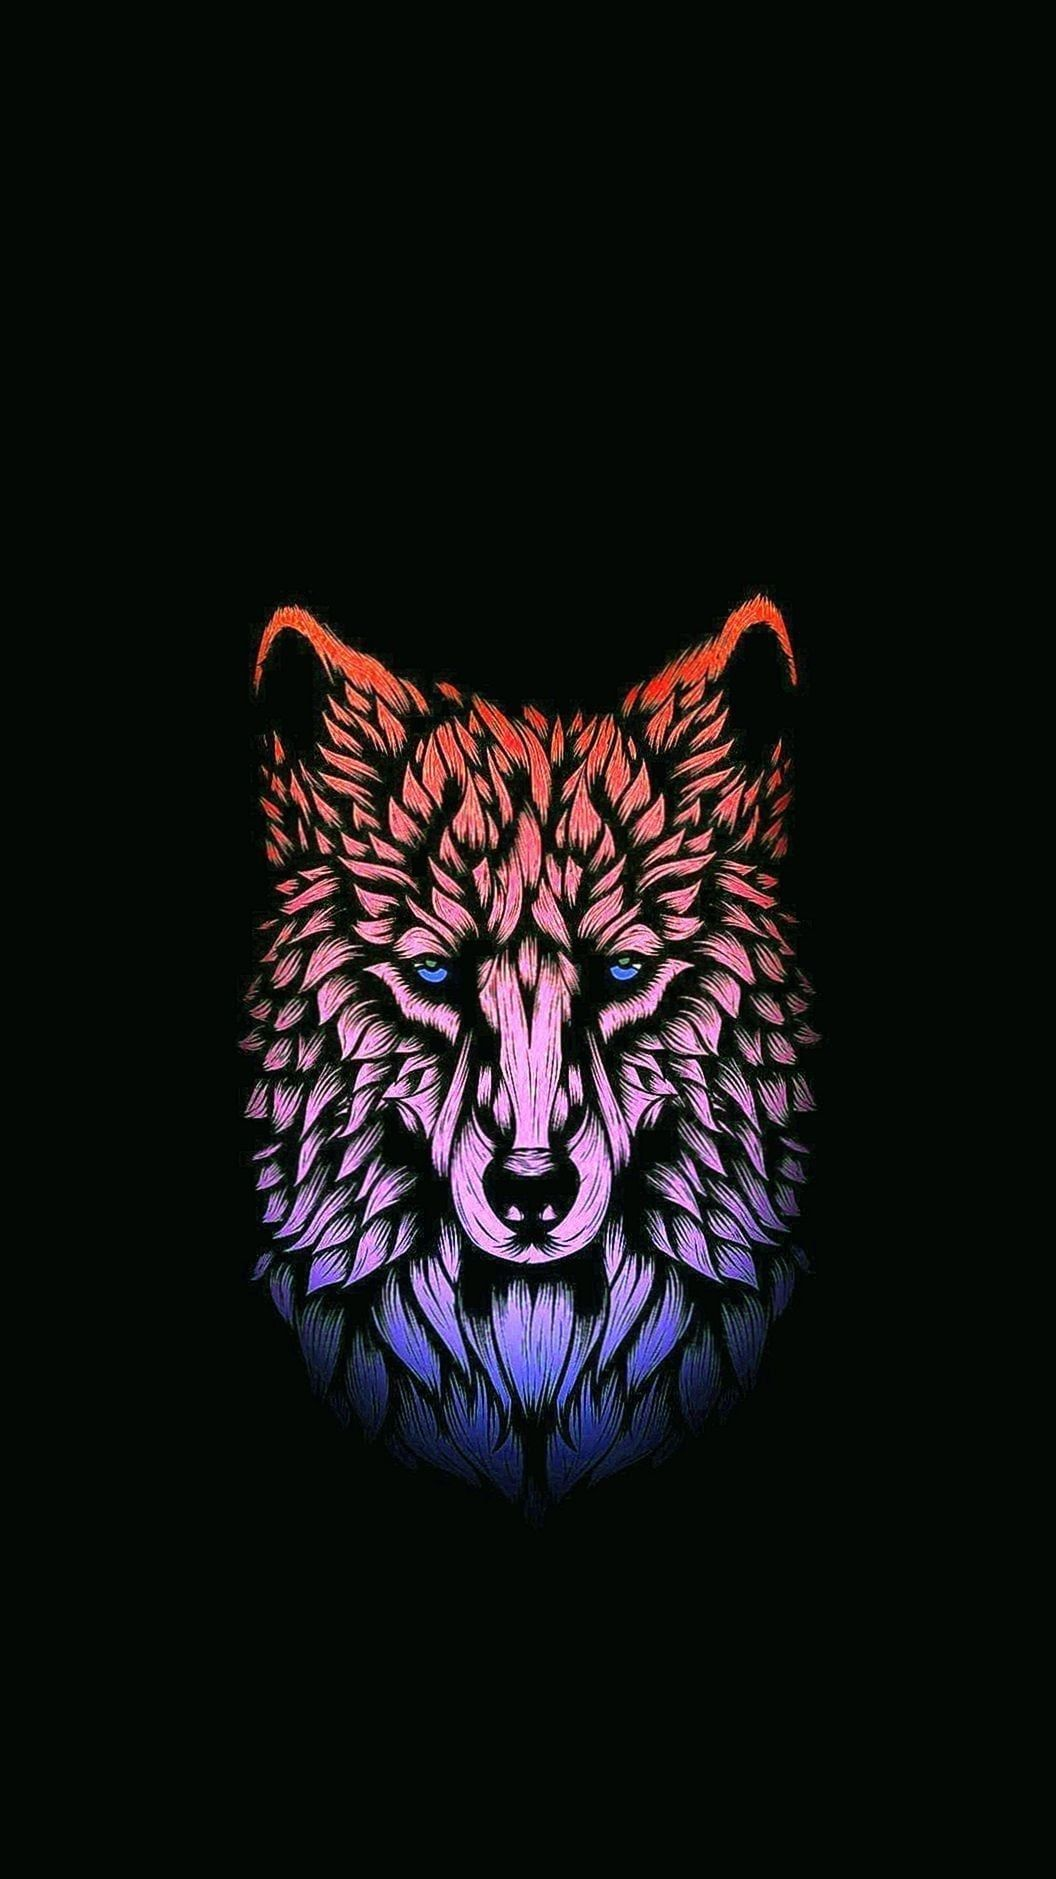 Wolf Wallpapers 4k For Mobile In 2020 Wolf Wallpaper 4k Wallpaper For Mobile Ice Wolf Wallpaper